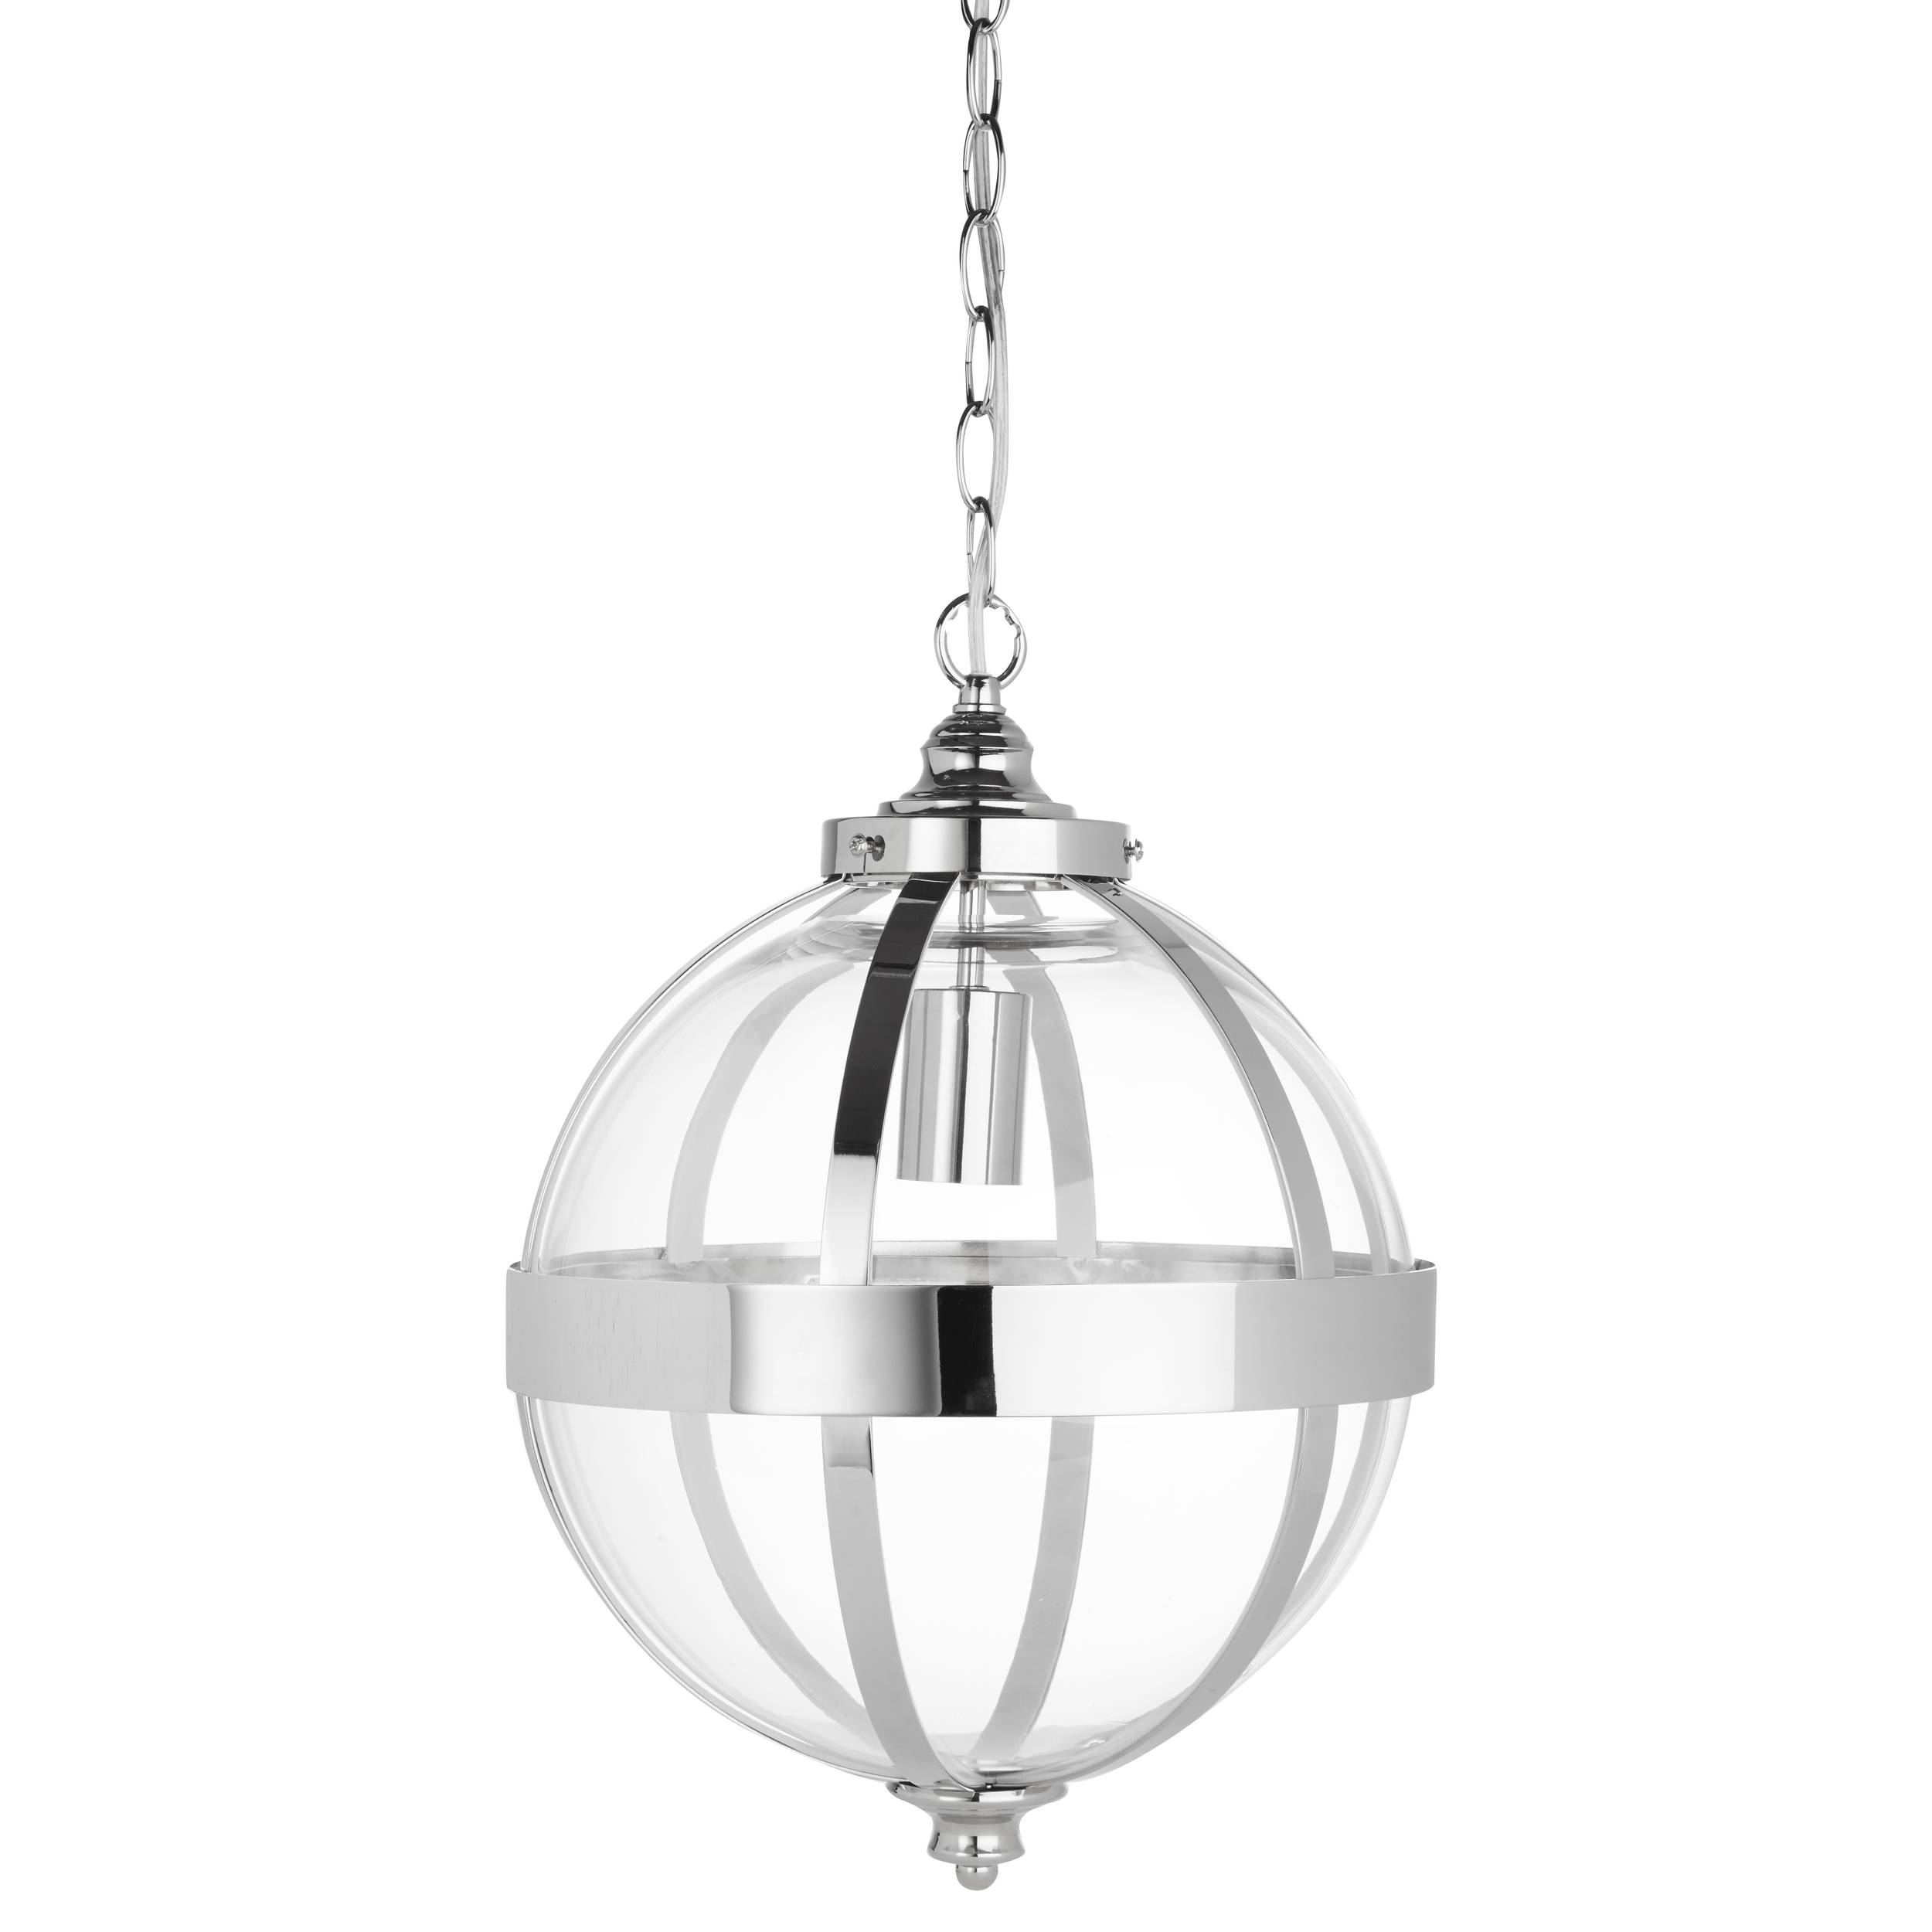 Odiham Antique Brass Sphere Pendant Light At Laura Ashley with regard to Glass Sphere Pendant Lights (Image 11 of 15)